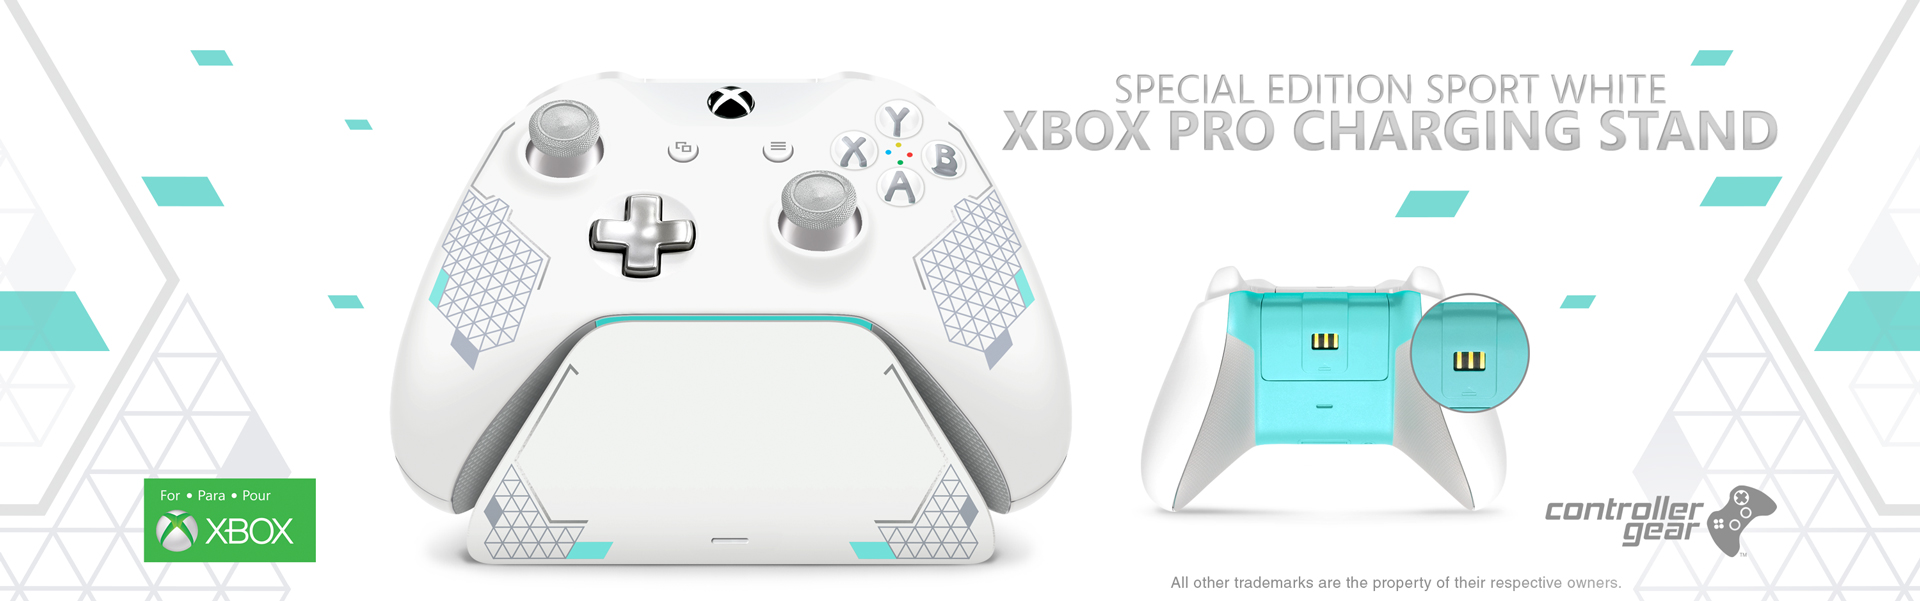 Sport White Special Edition Xbox Pro Charging Stand